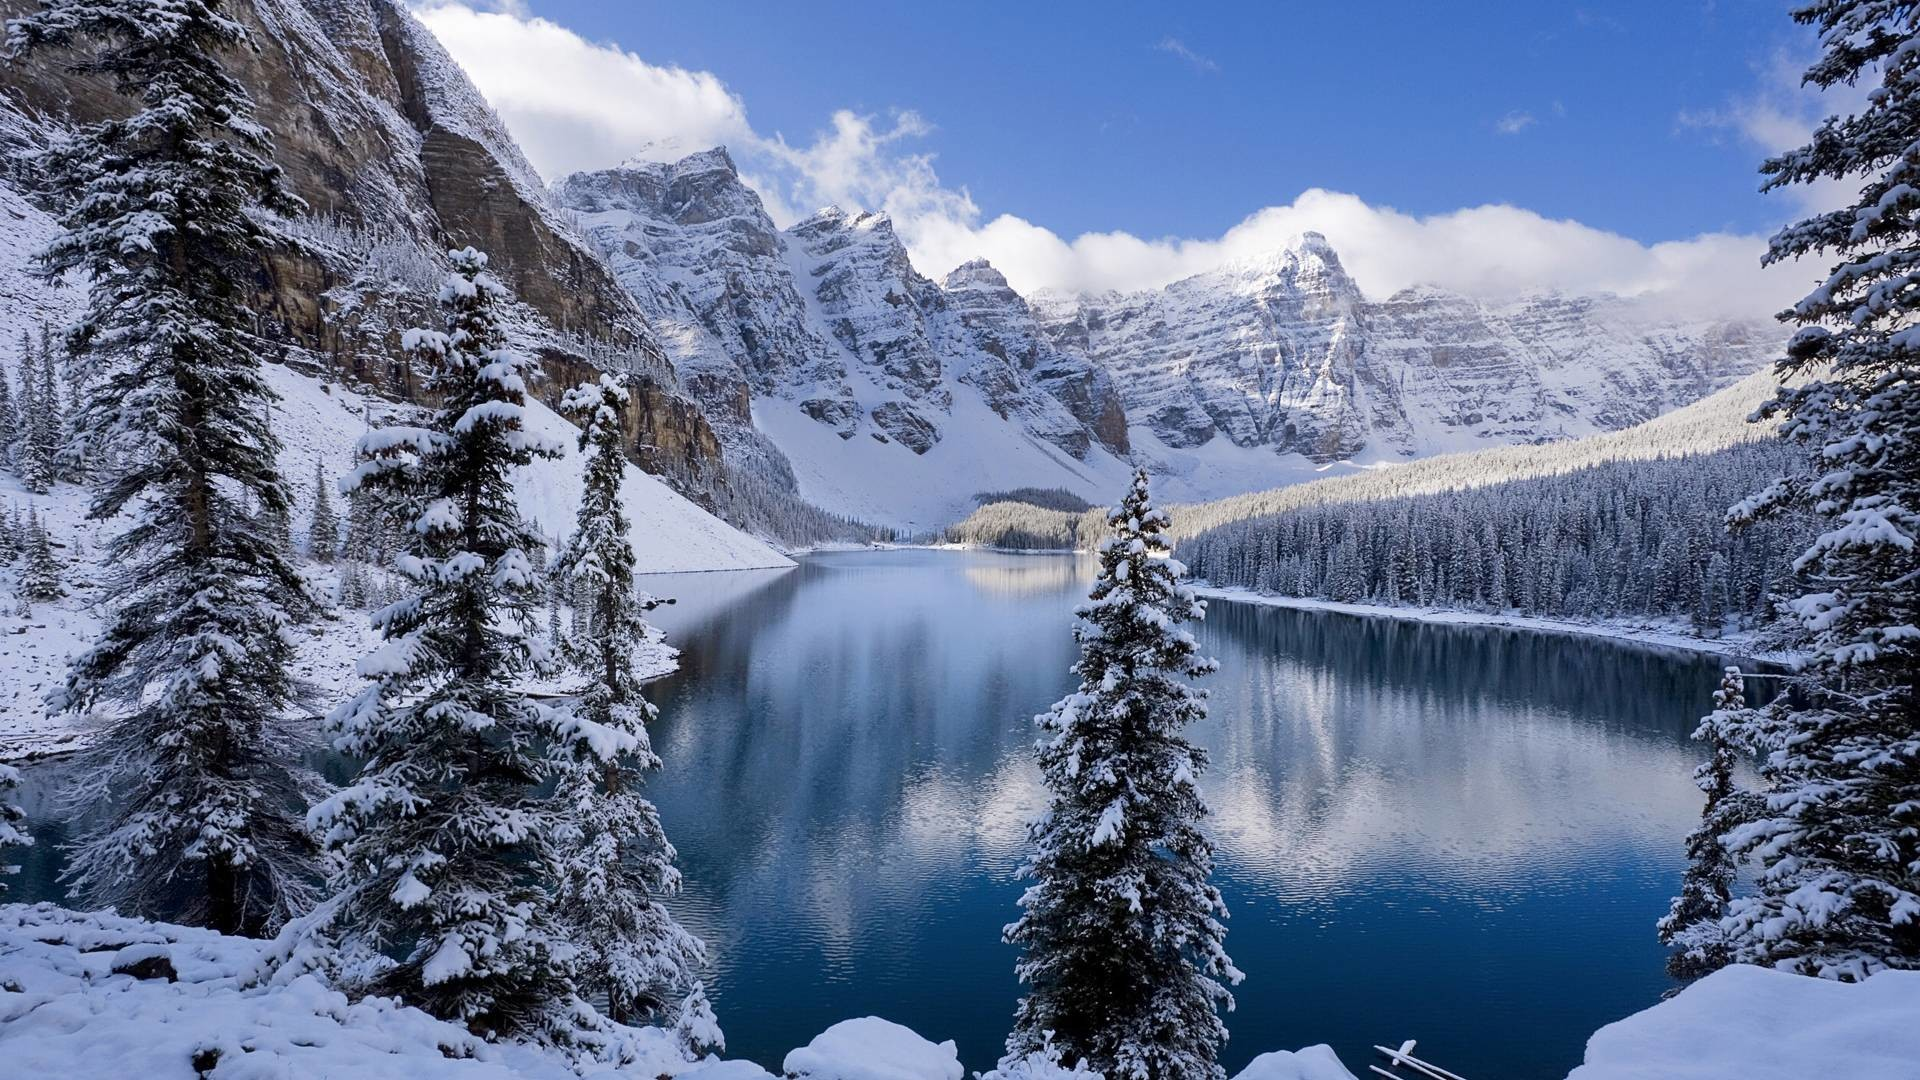 Hd Winter Wallpapers 1080p 68 Images